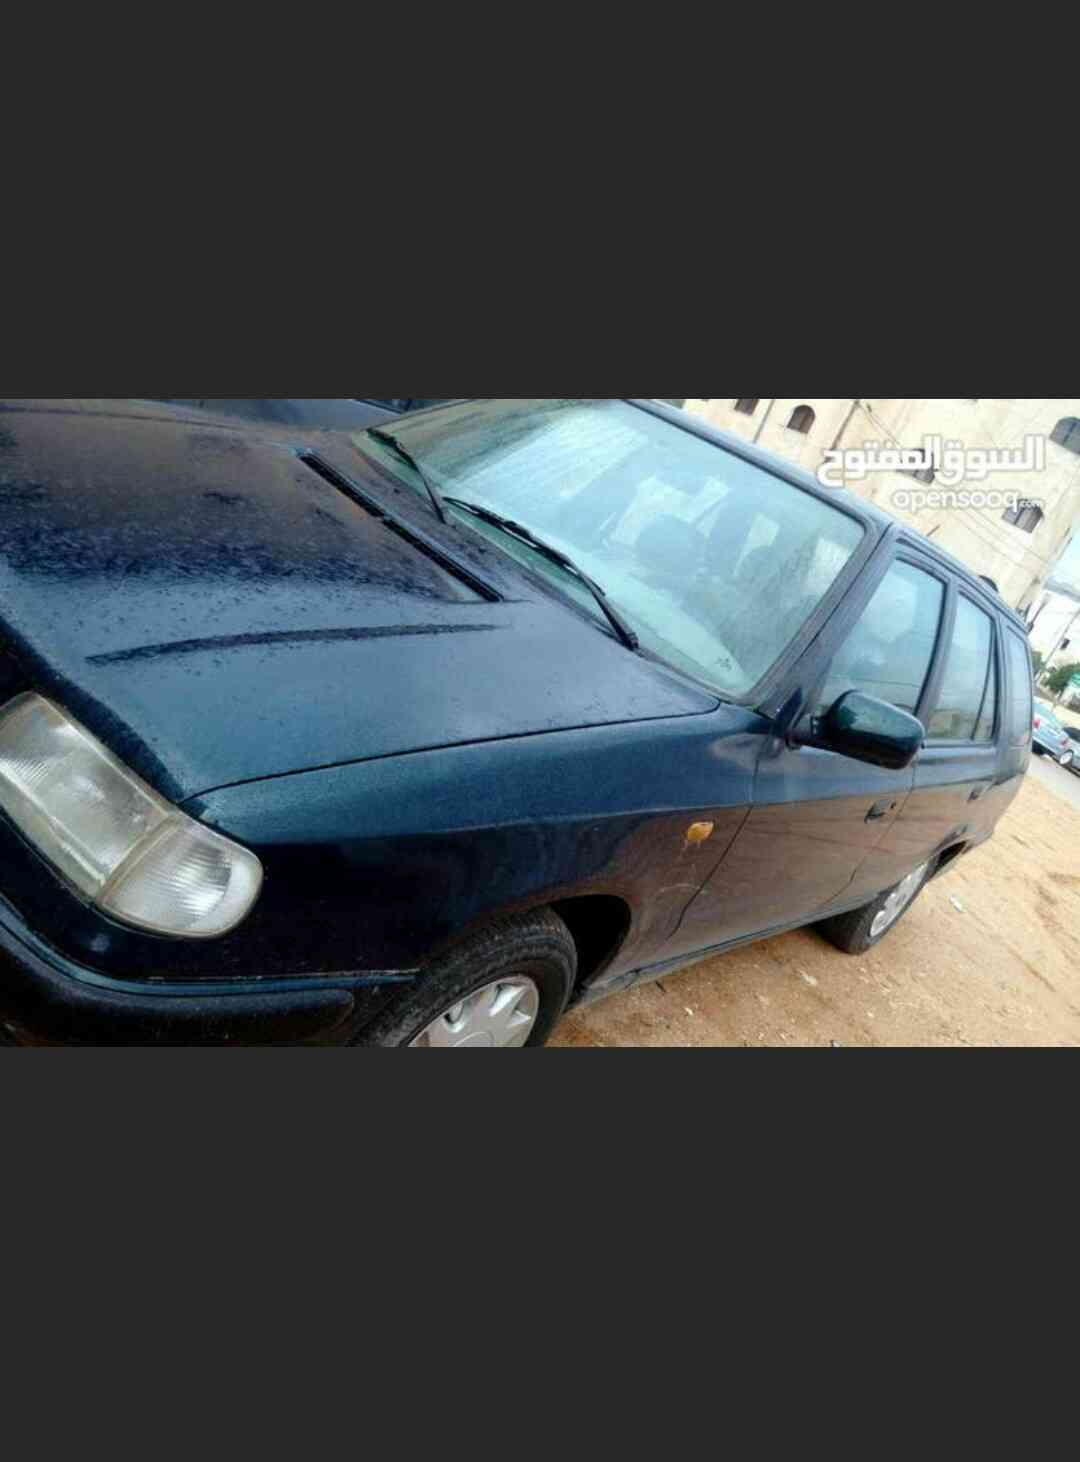 1997 Toyota Supra Turbo for sale in an excellent condition, no accident and well maintained and it has perfect tires with sound engine. Interested buyer should -  شكودا فيليسيا موديل 97...